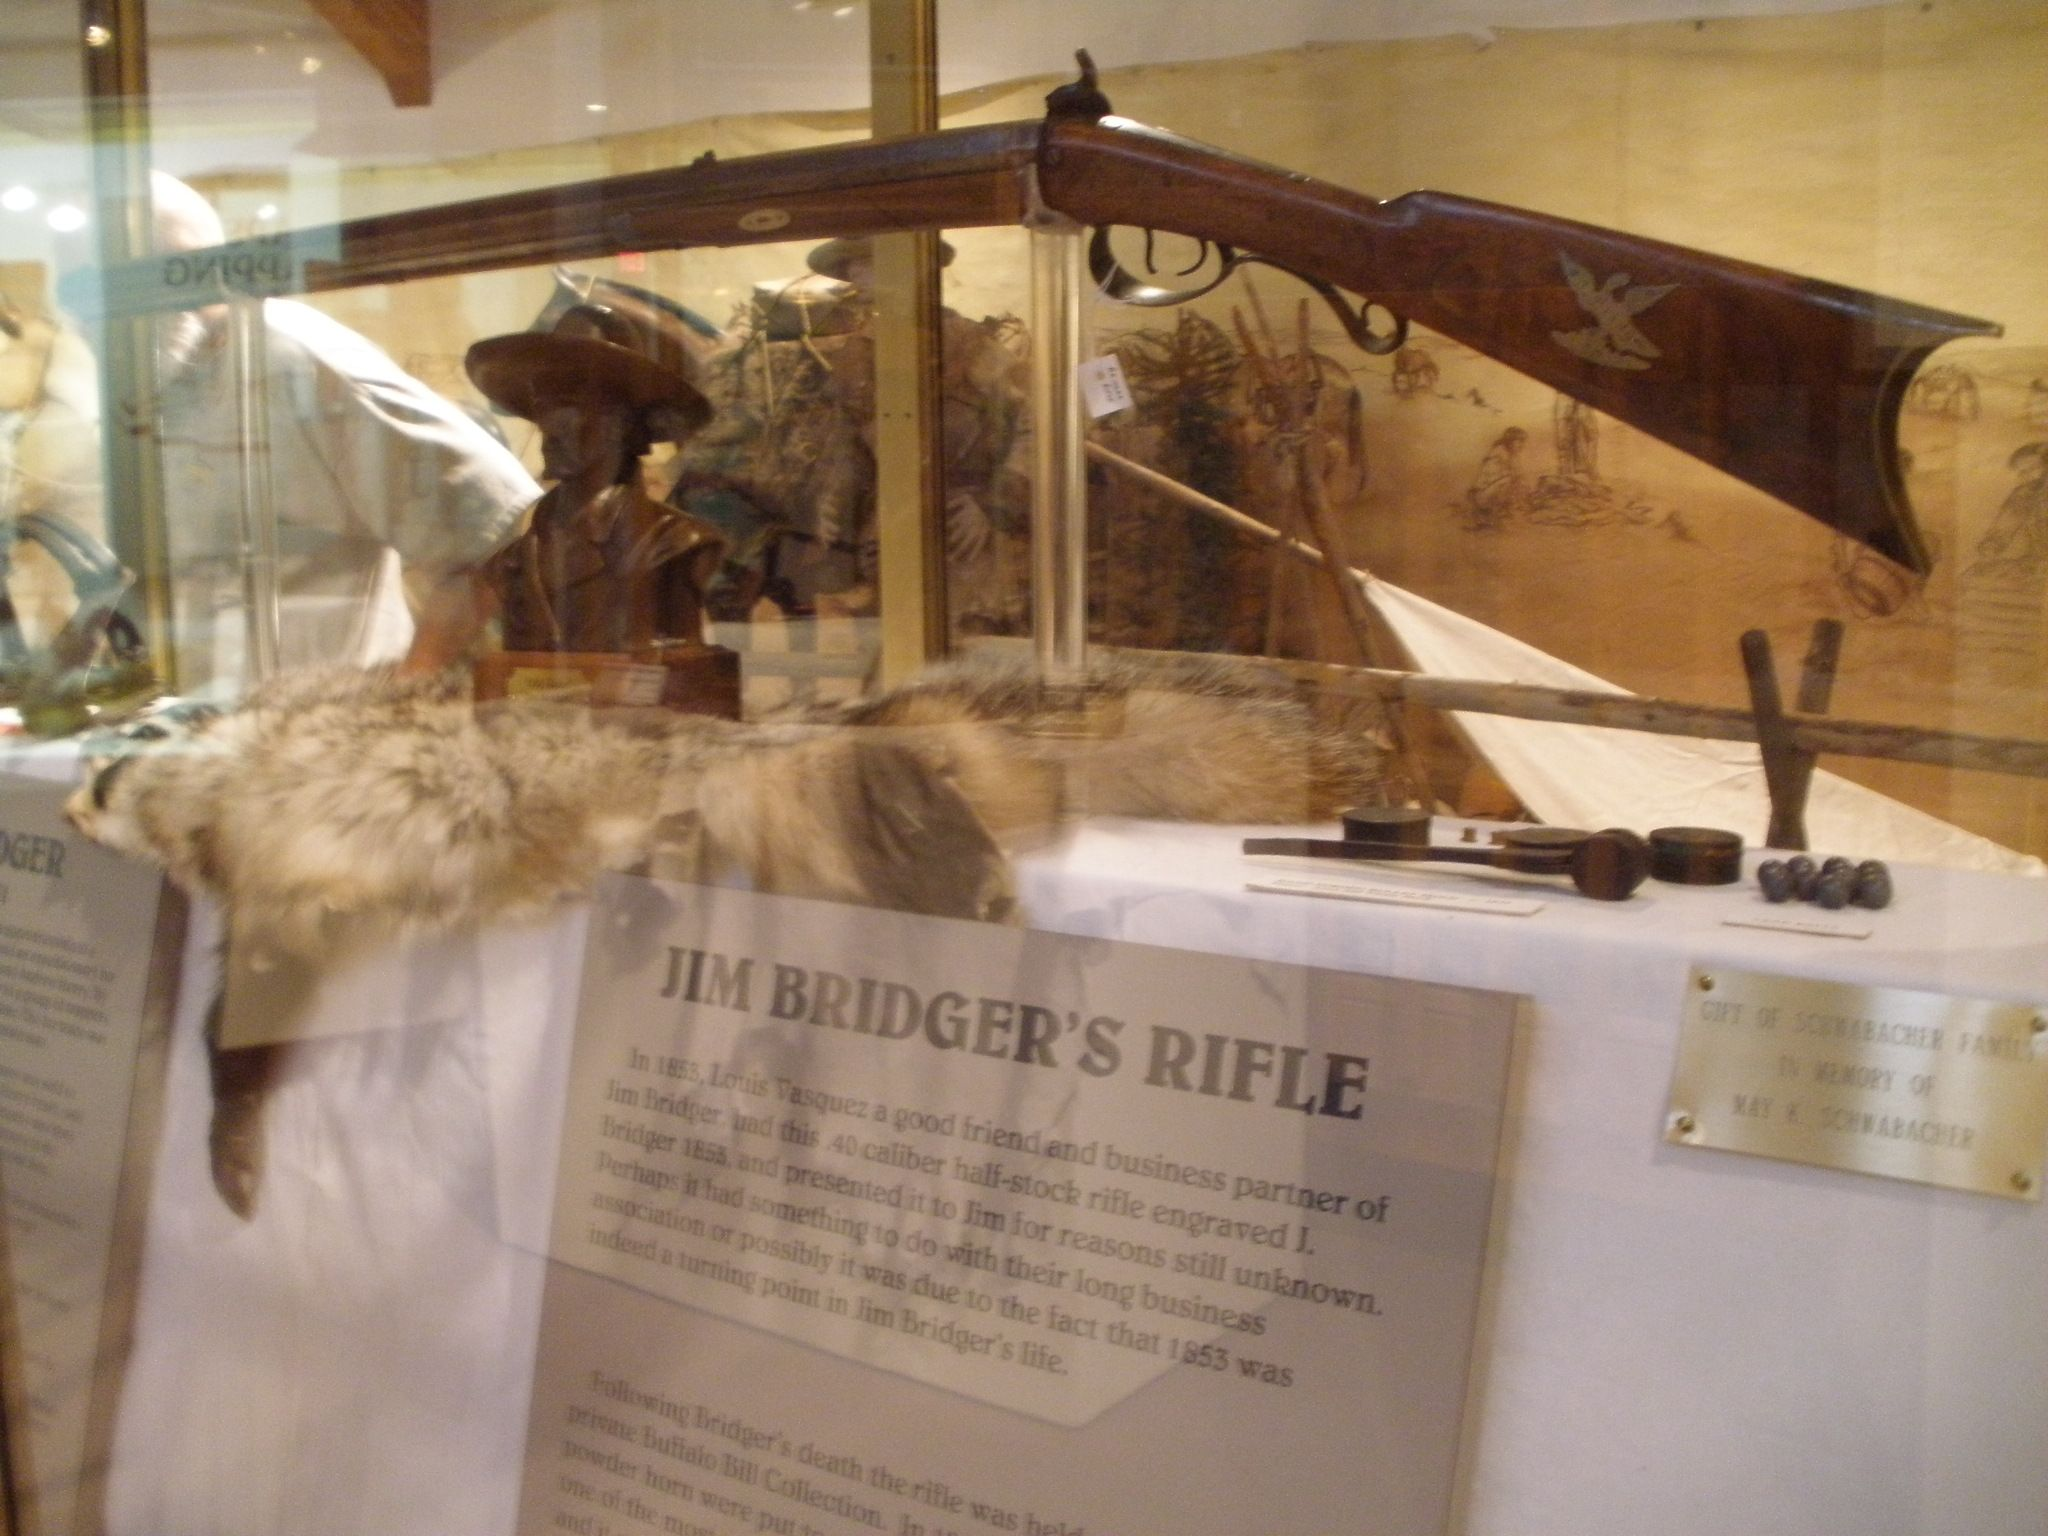 Jim Bridger's rifle in the Museum of the Mountain Men, Pinedale, WY